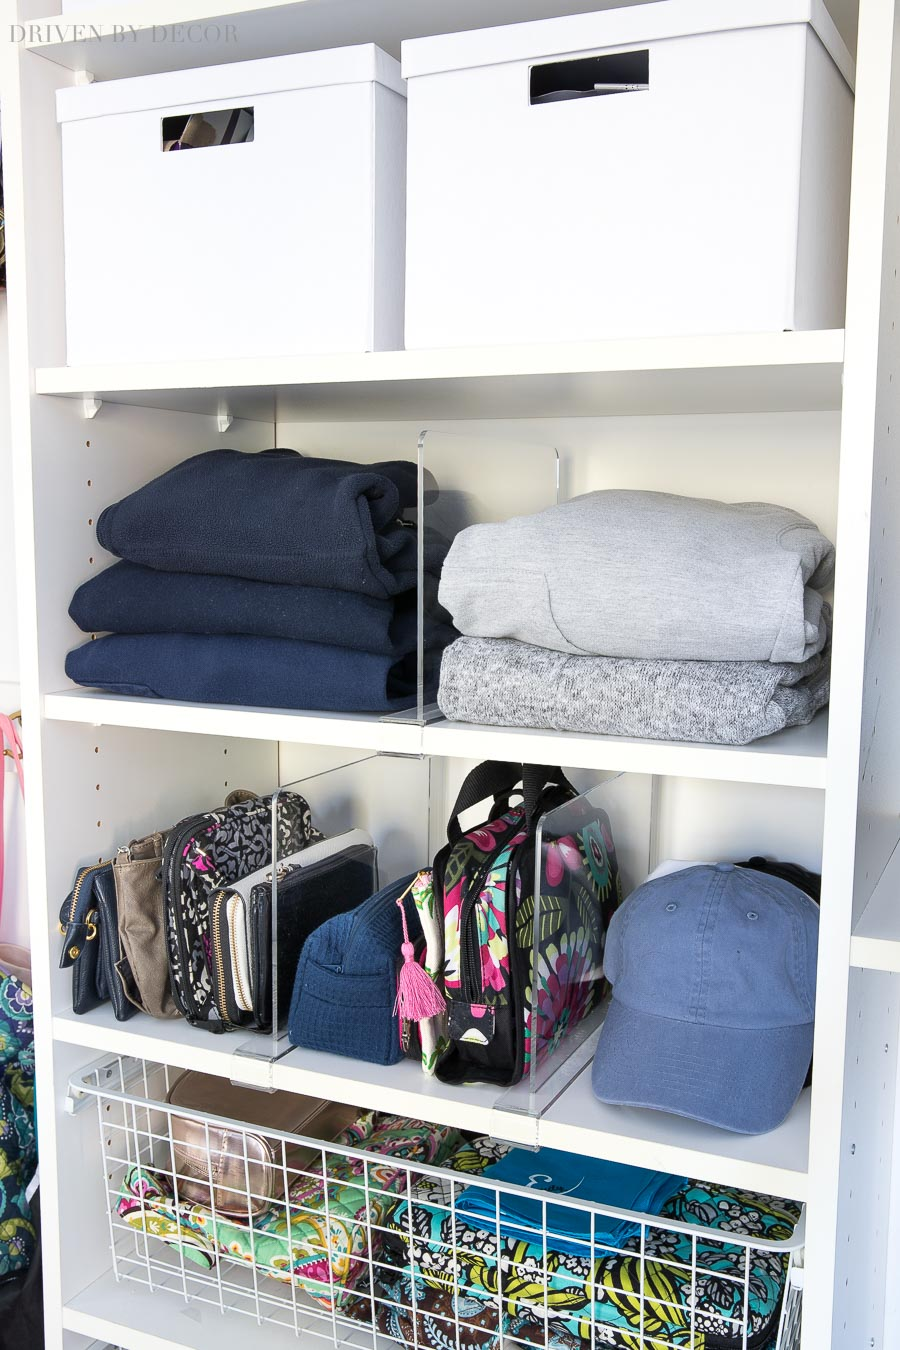 Clear acrylic shelf dividers are the perfect, simple way to organize and keep everything in place in your closet!